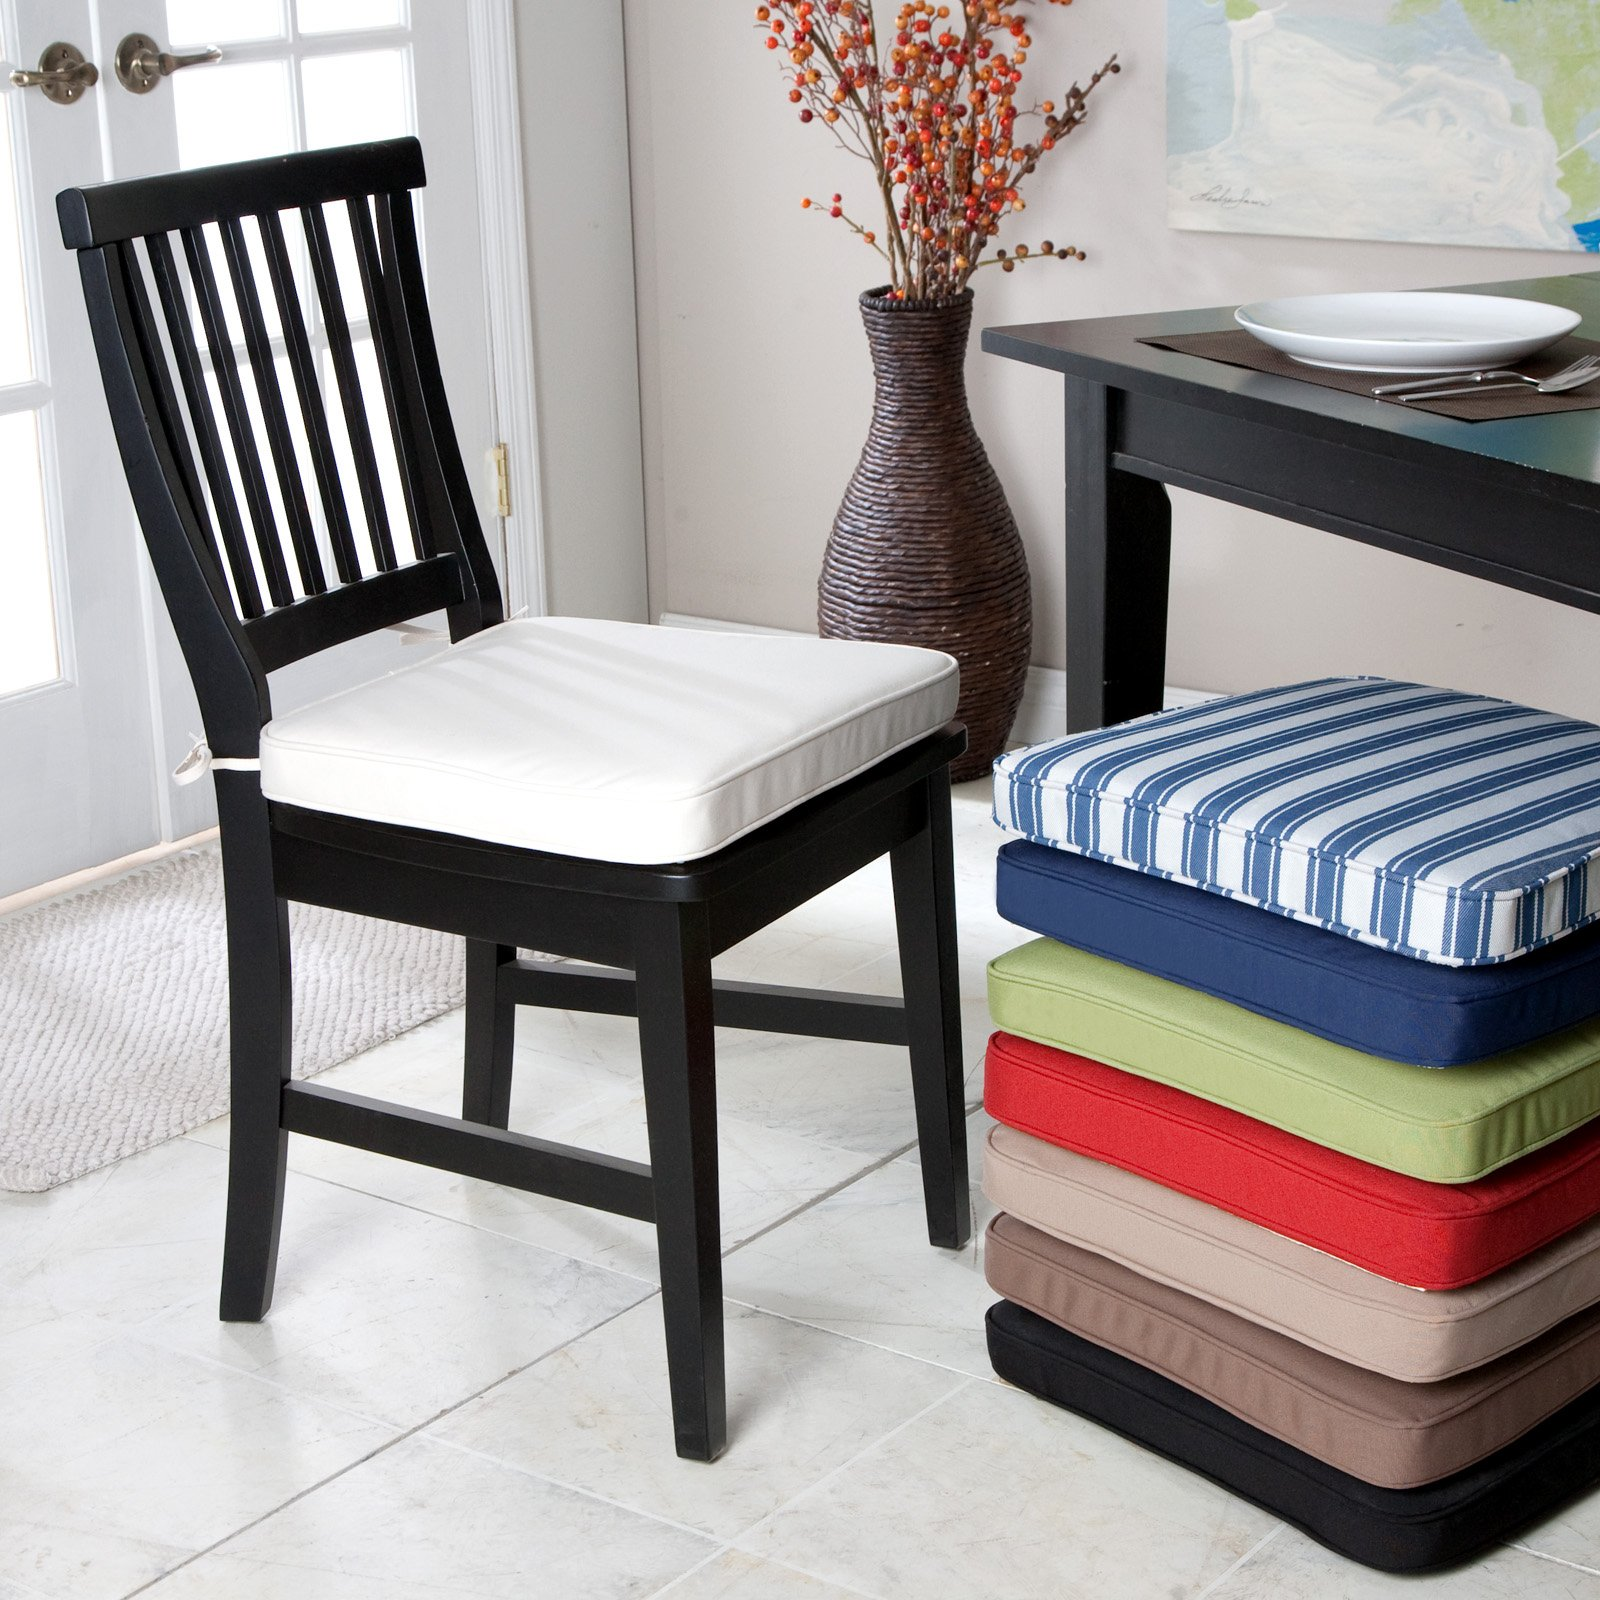 Seat cushions dining room chairs - large and beautiful ...